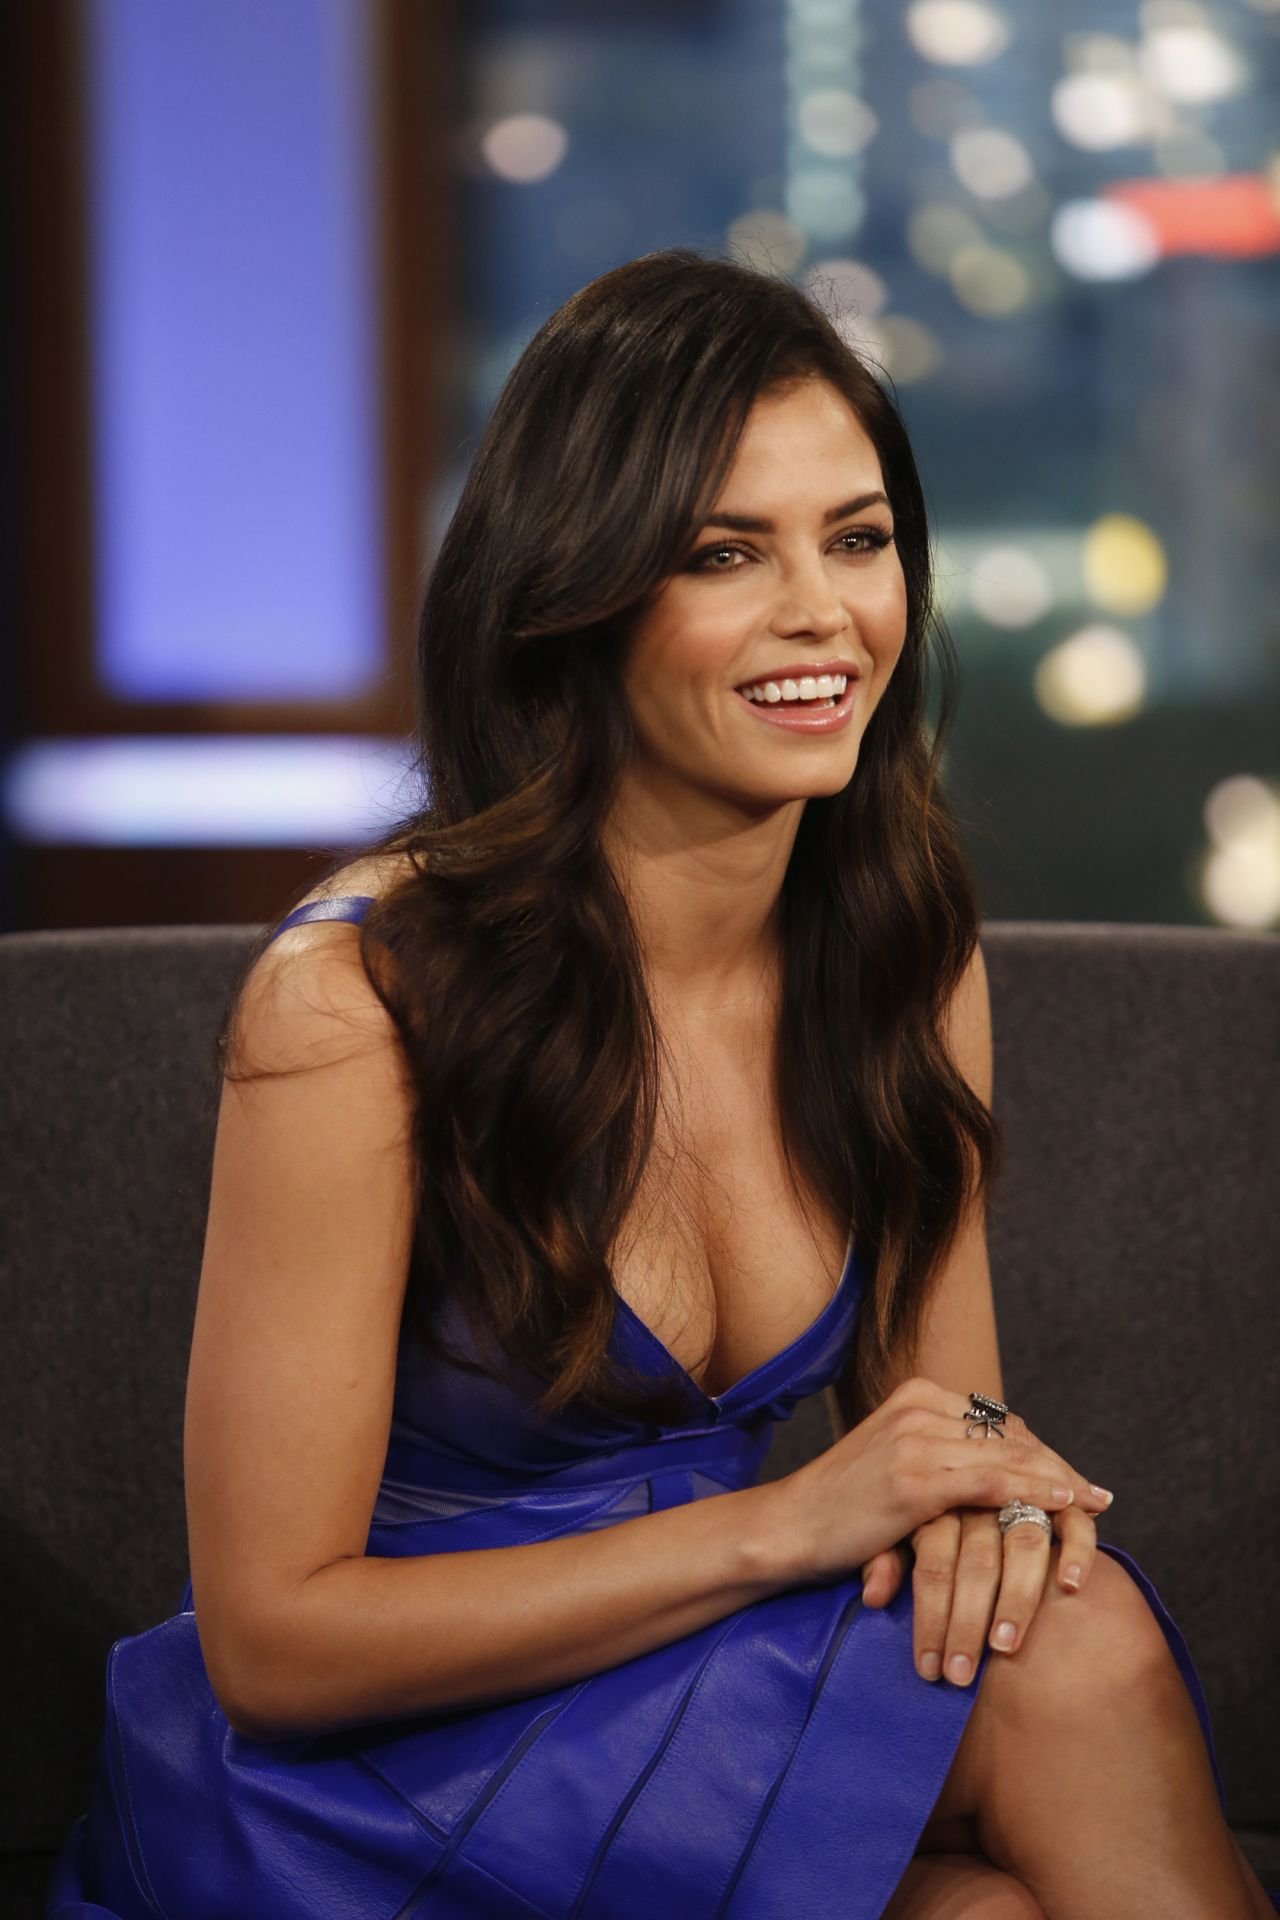 Jenna Dewan-Tatum at Jimmy Kimmel Live - June 2014